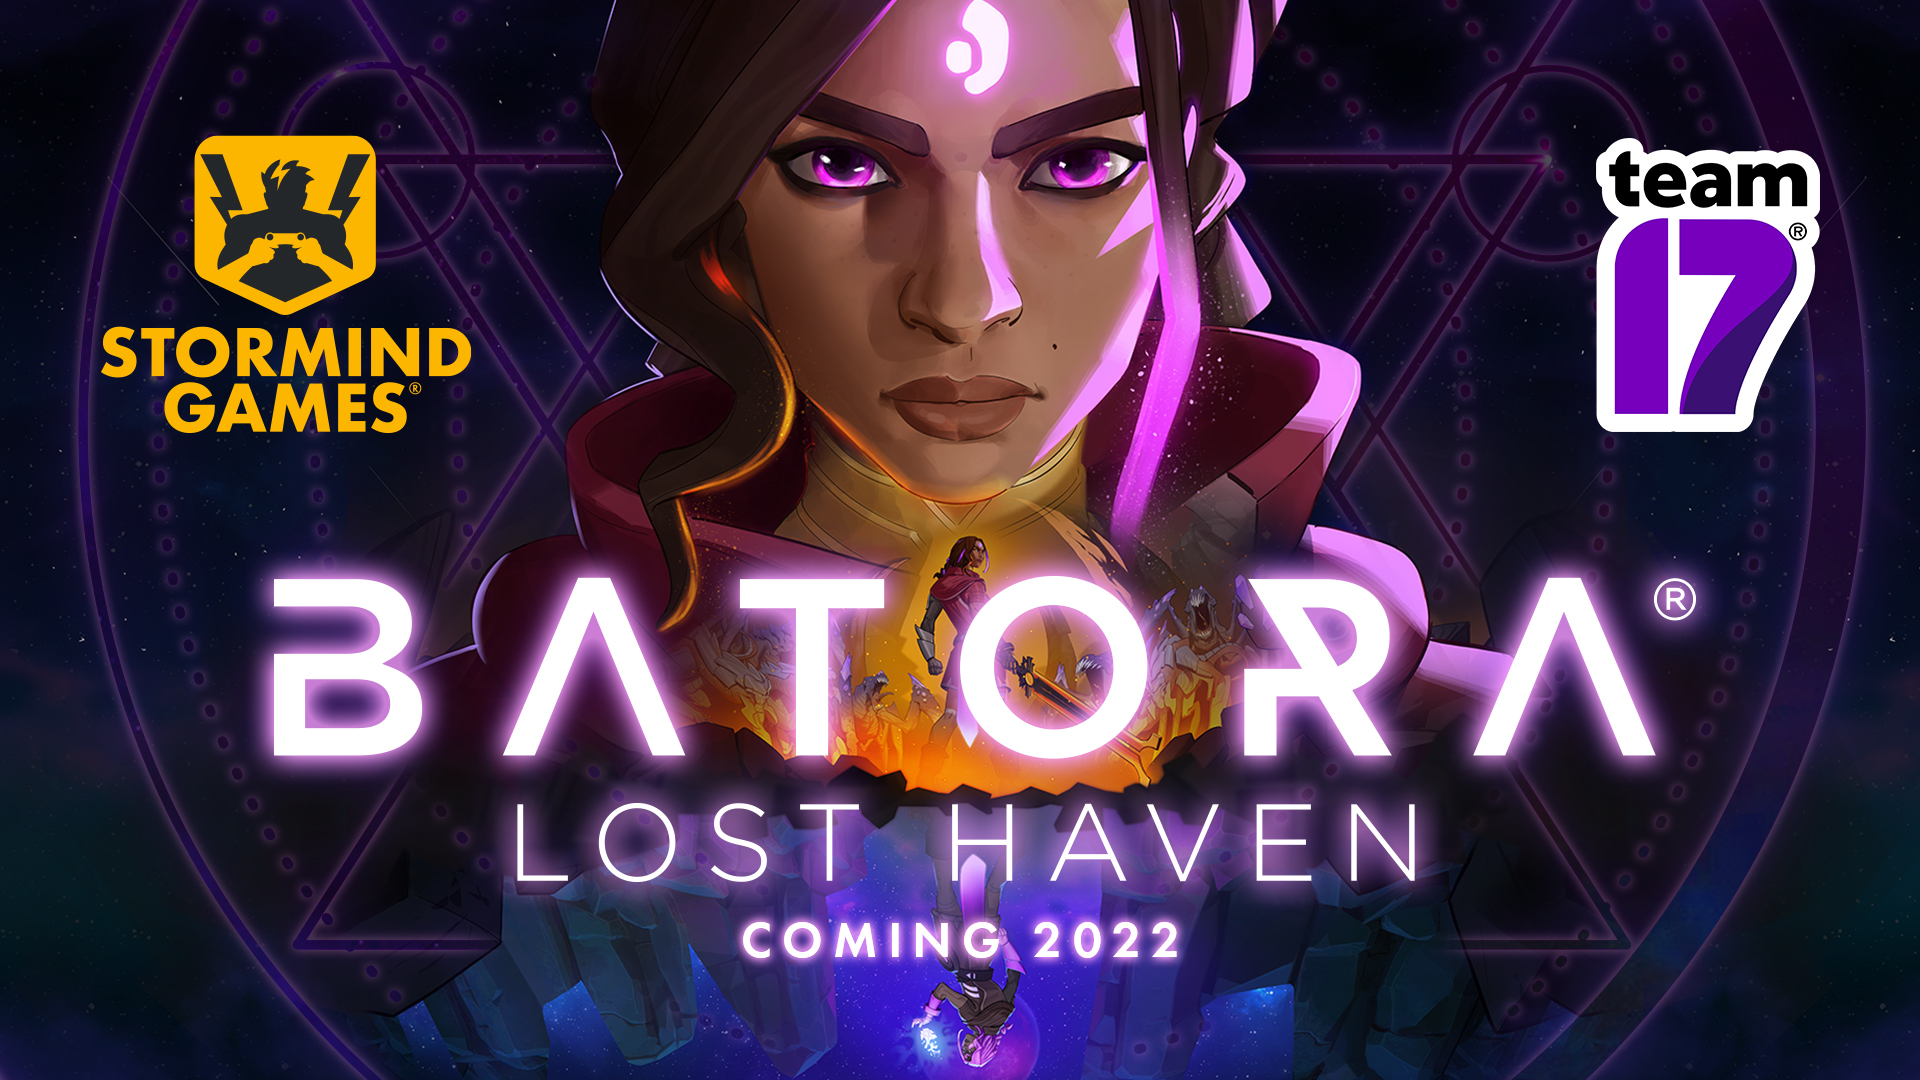 We joined forces with Team17 to bring Batora: Lost Haven to PC and consoles in 2022